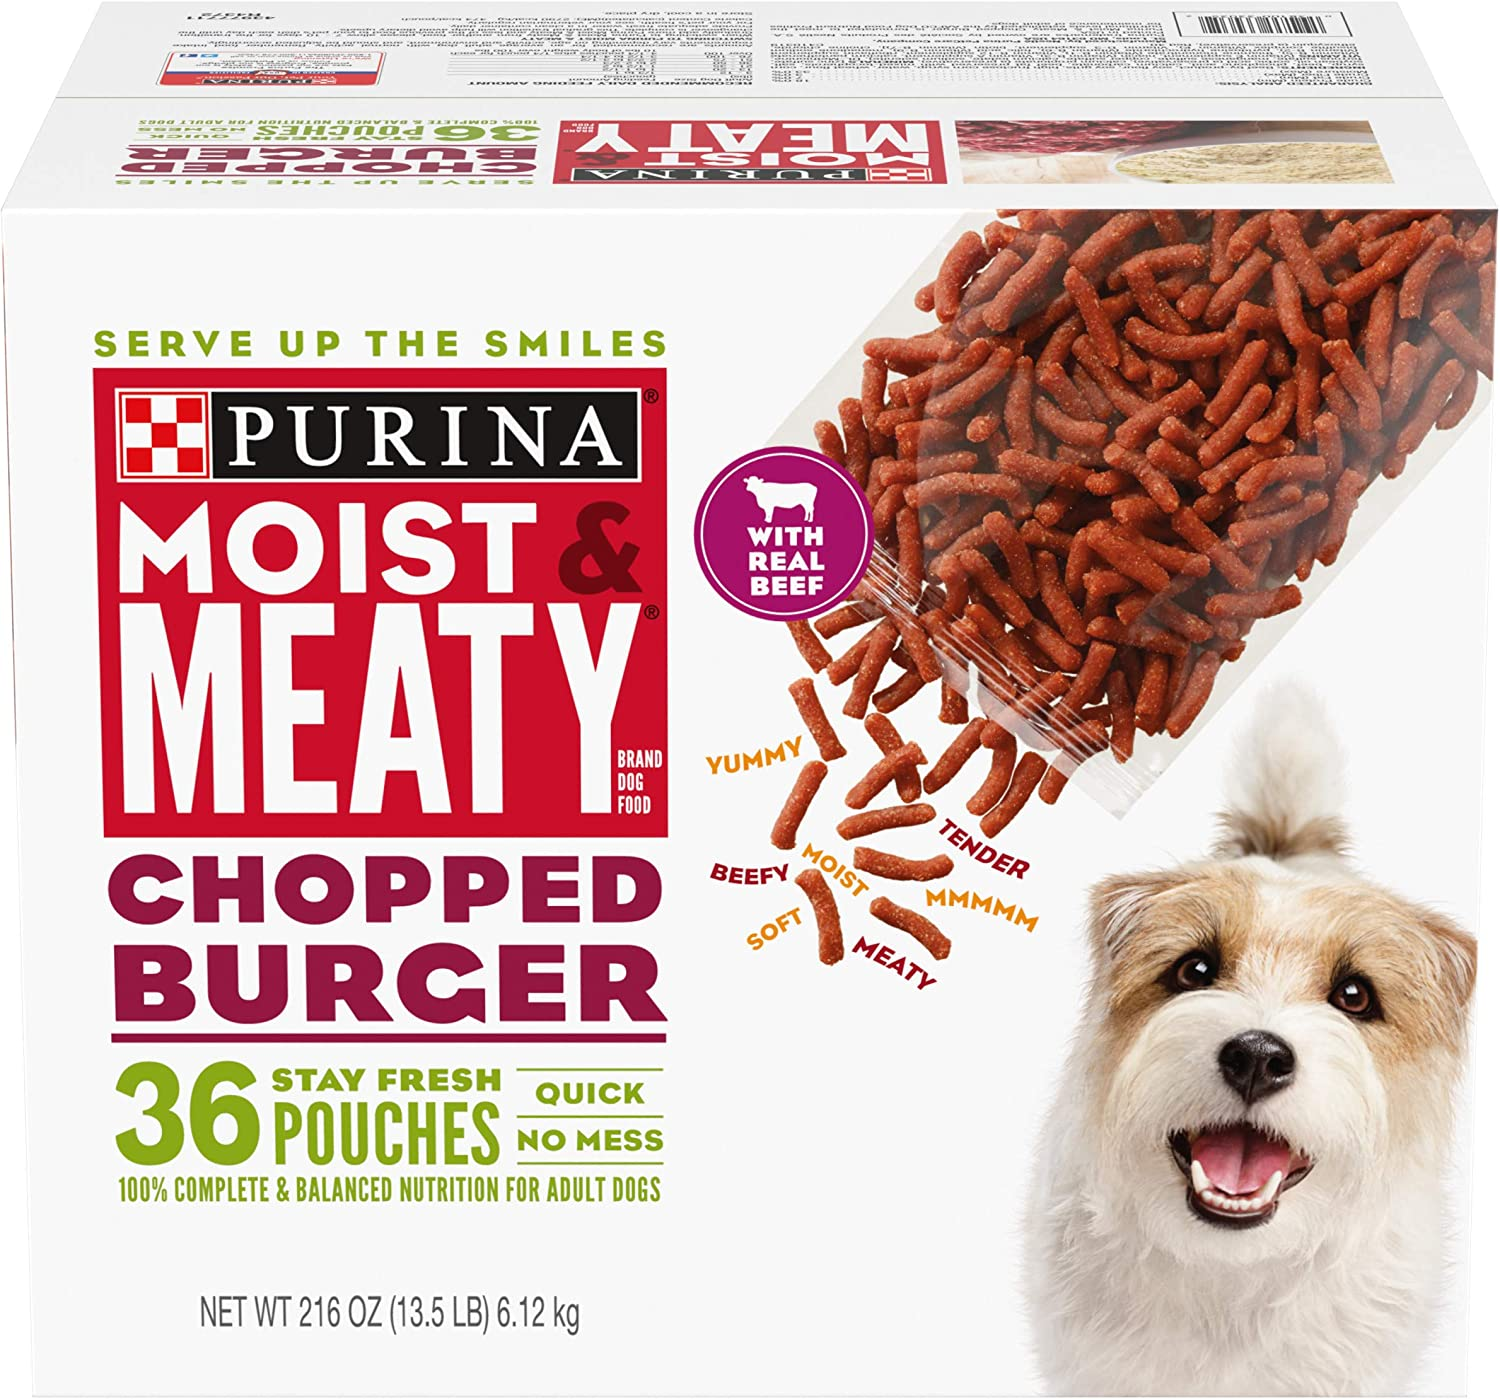 Purina Moist & Meaty Chopped Burger Adult Dry Dog Food